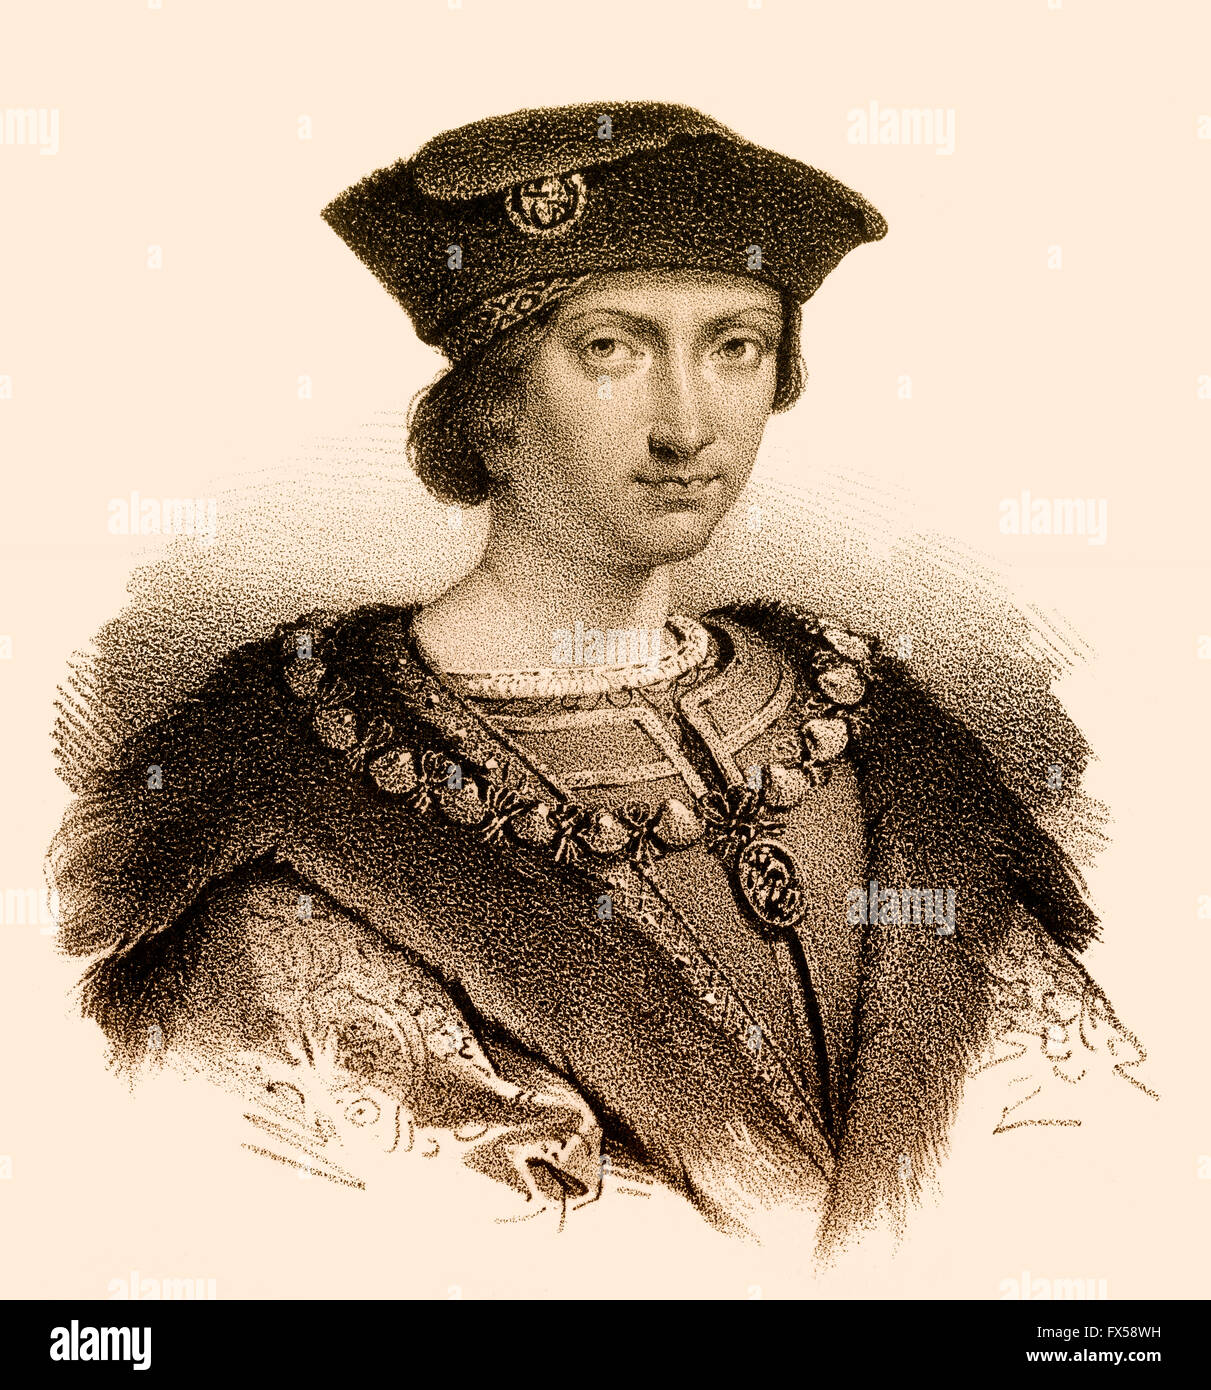 Charles VIII, Karl VIII., called the Affable, 1470-1498, King of France - Stock Image